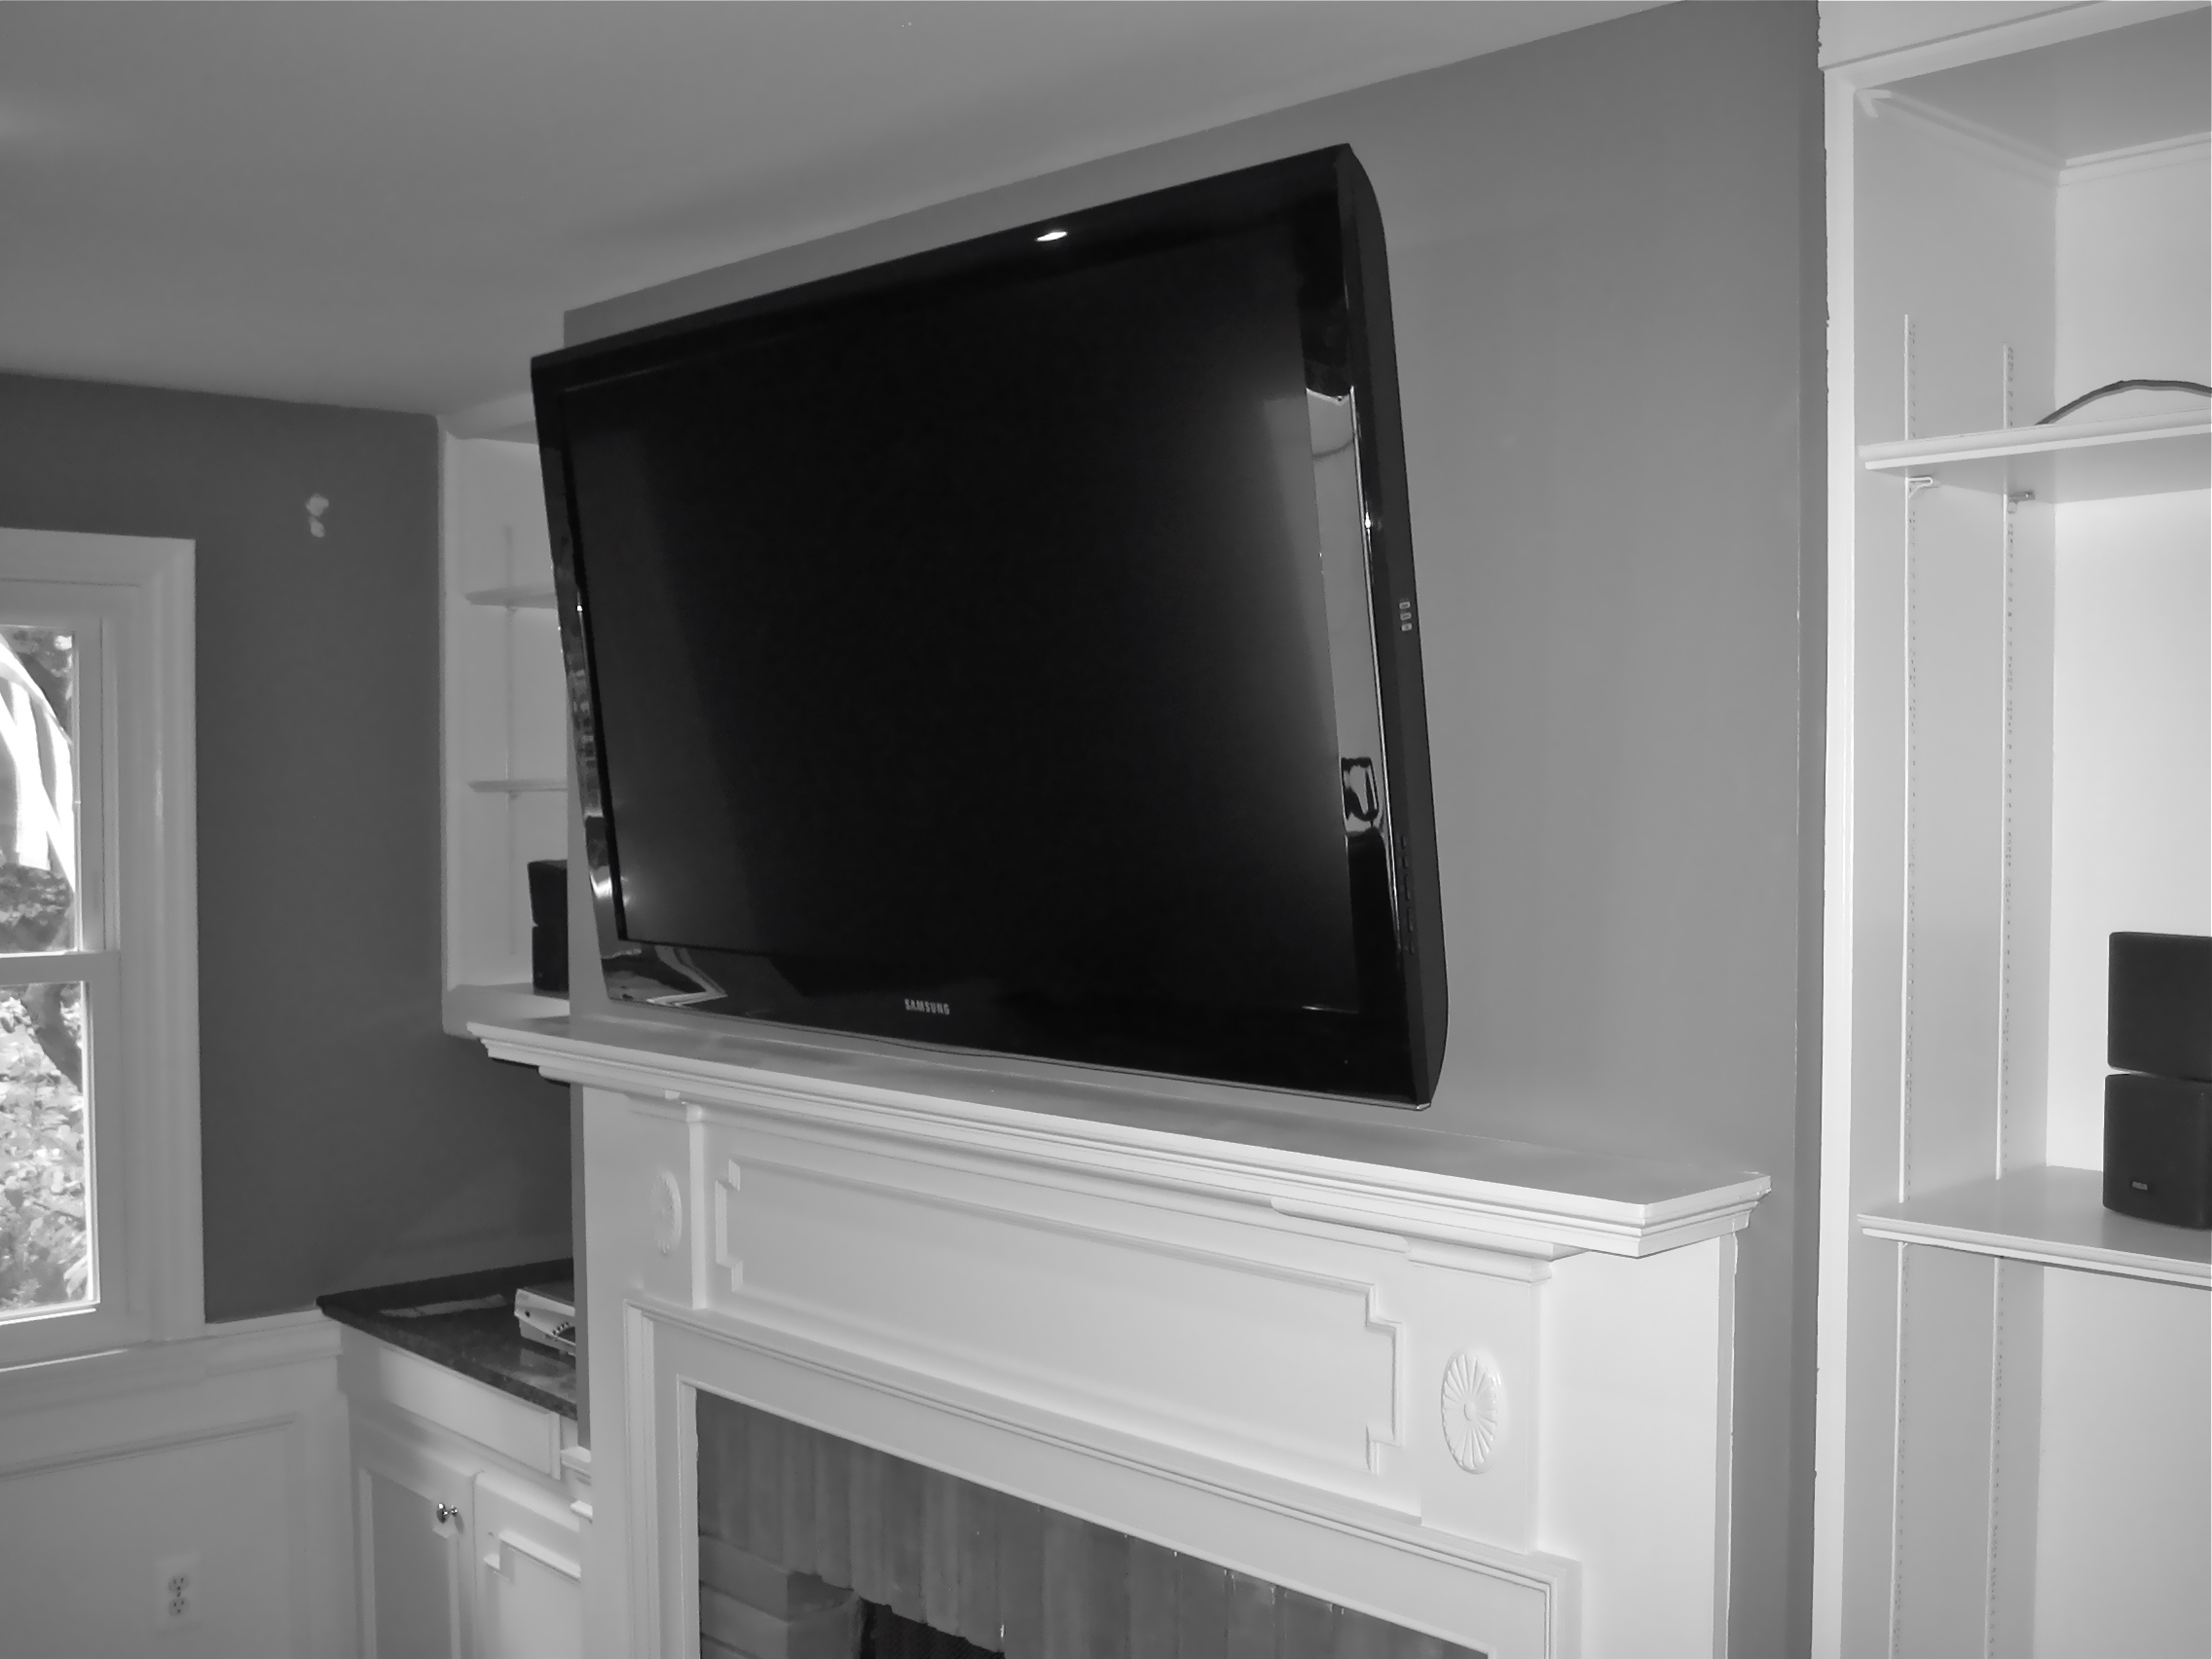 greatest tv over fireplace how to hide wires fp35 roccommunity rh roccommunitysummit org hide wires wall mount tv over fireplace